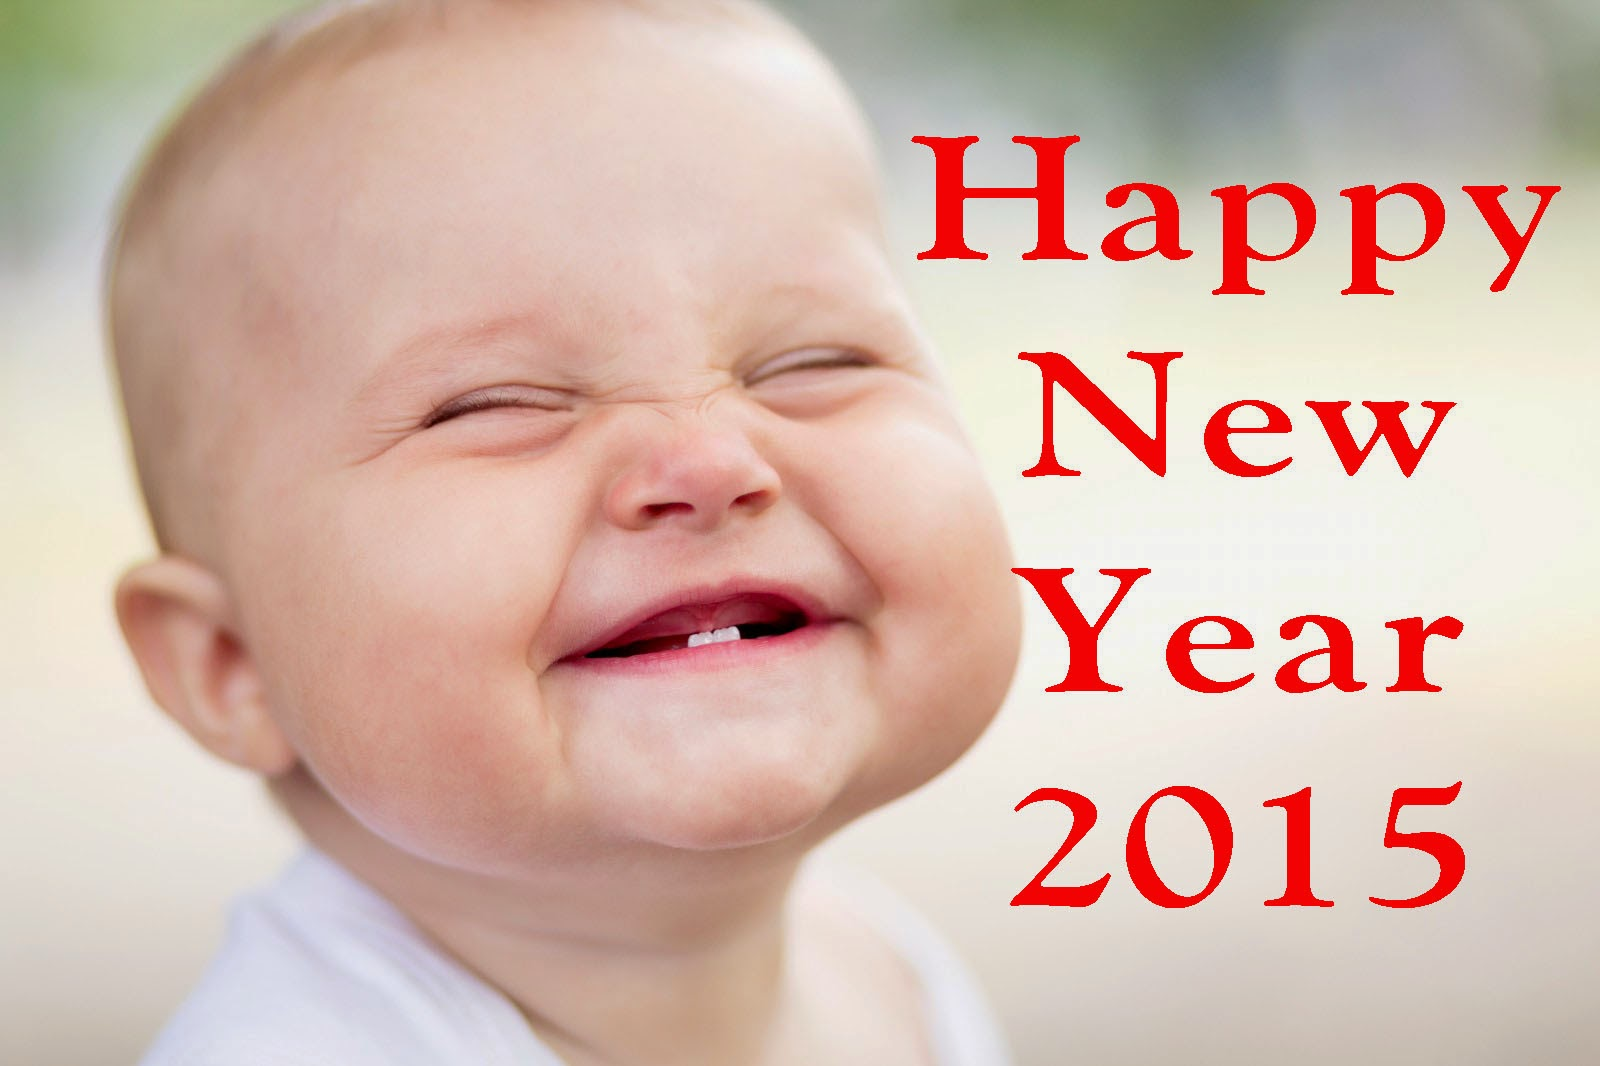 smiling cute babies hd wallpaper of new year 2015   Happy New Year 1600x1066